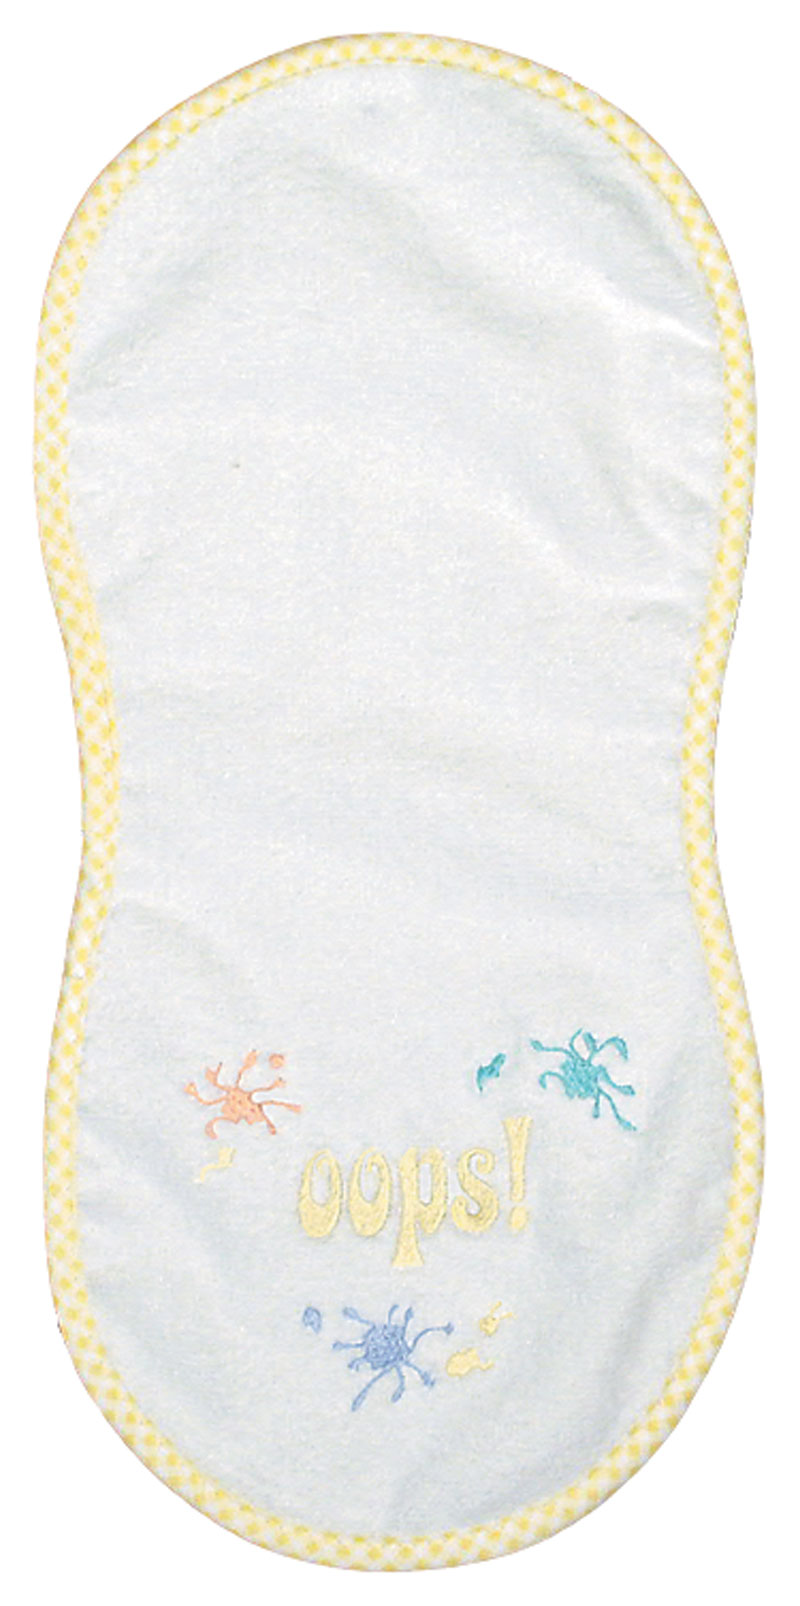 """Oops"" Unisex Burp Cloth"